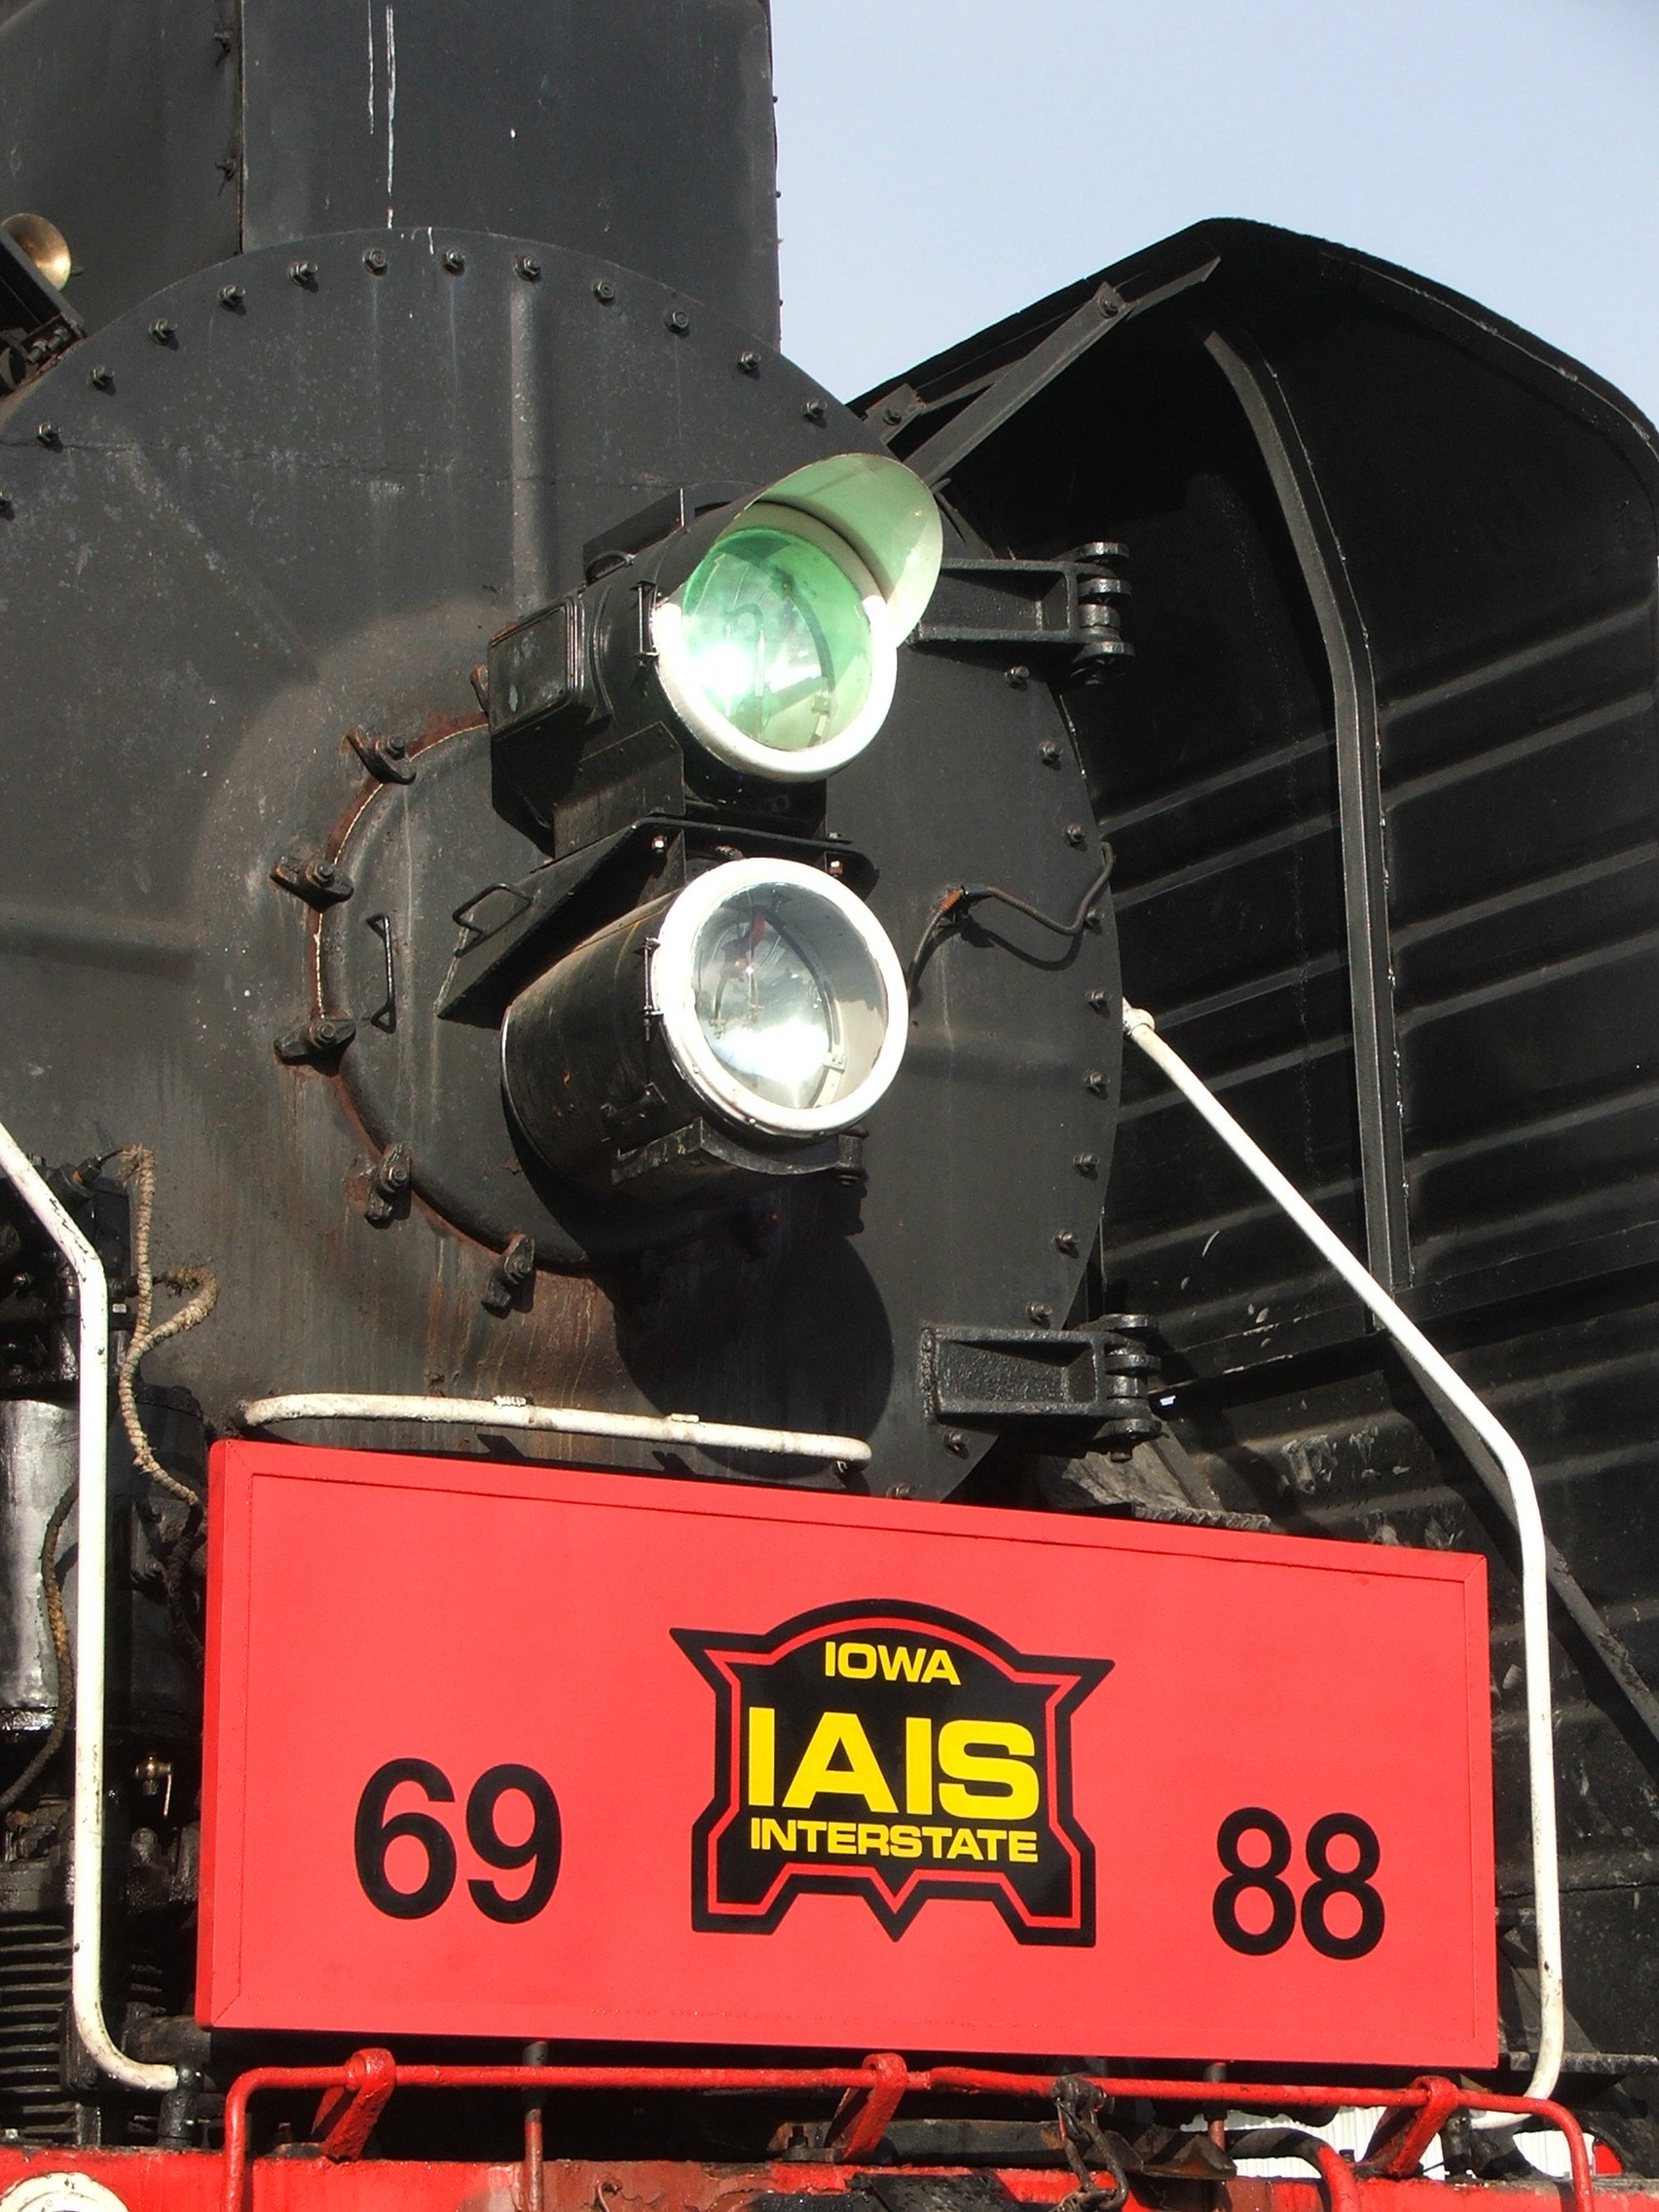 The new look of the former QJ steamers... a face only a mother could love.